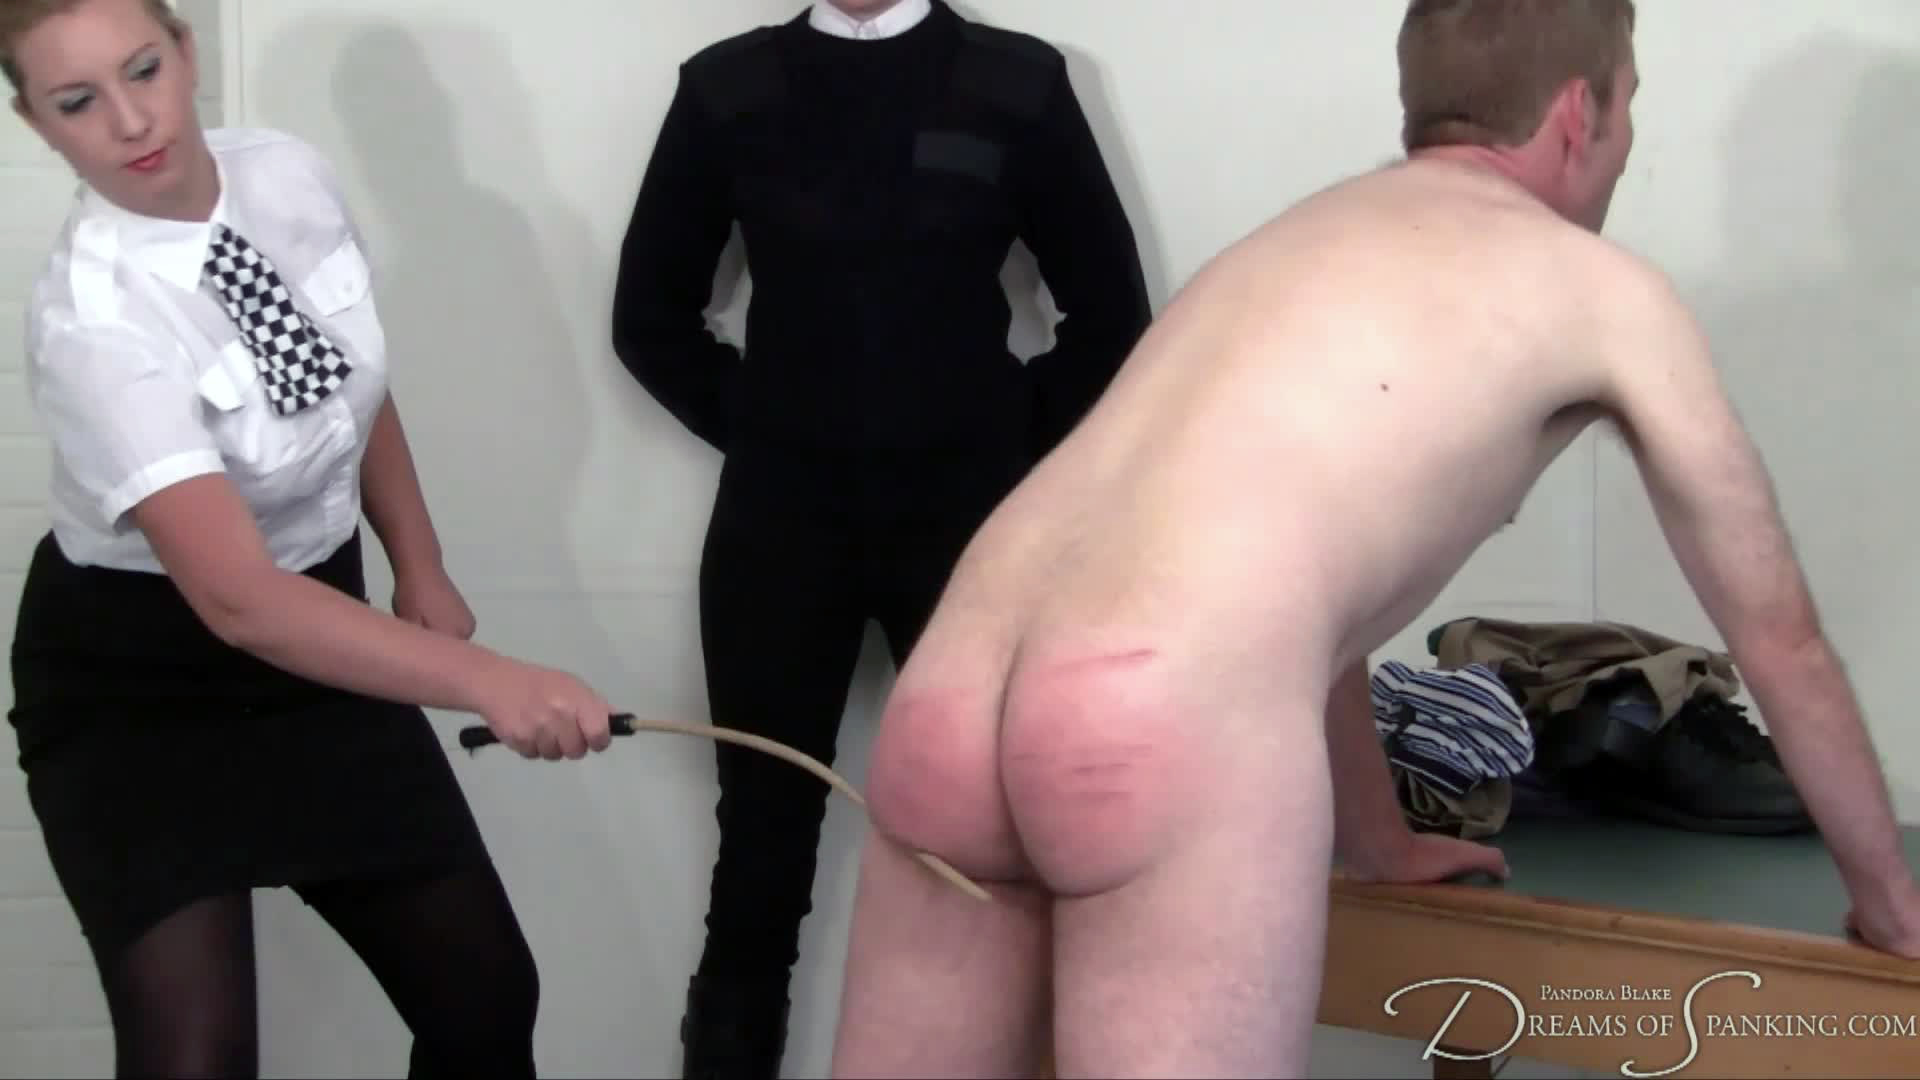 Caned by a WPC for drunk and disorderly behaviour at Dreams of Spanking